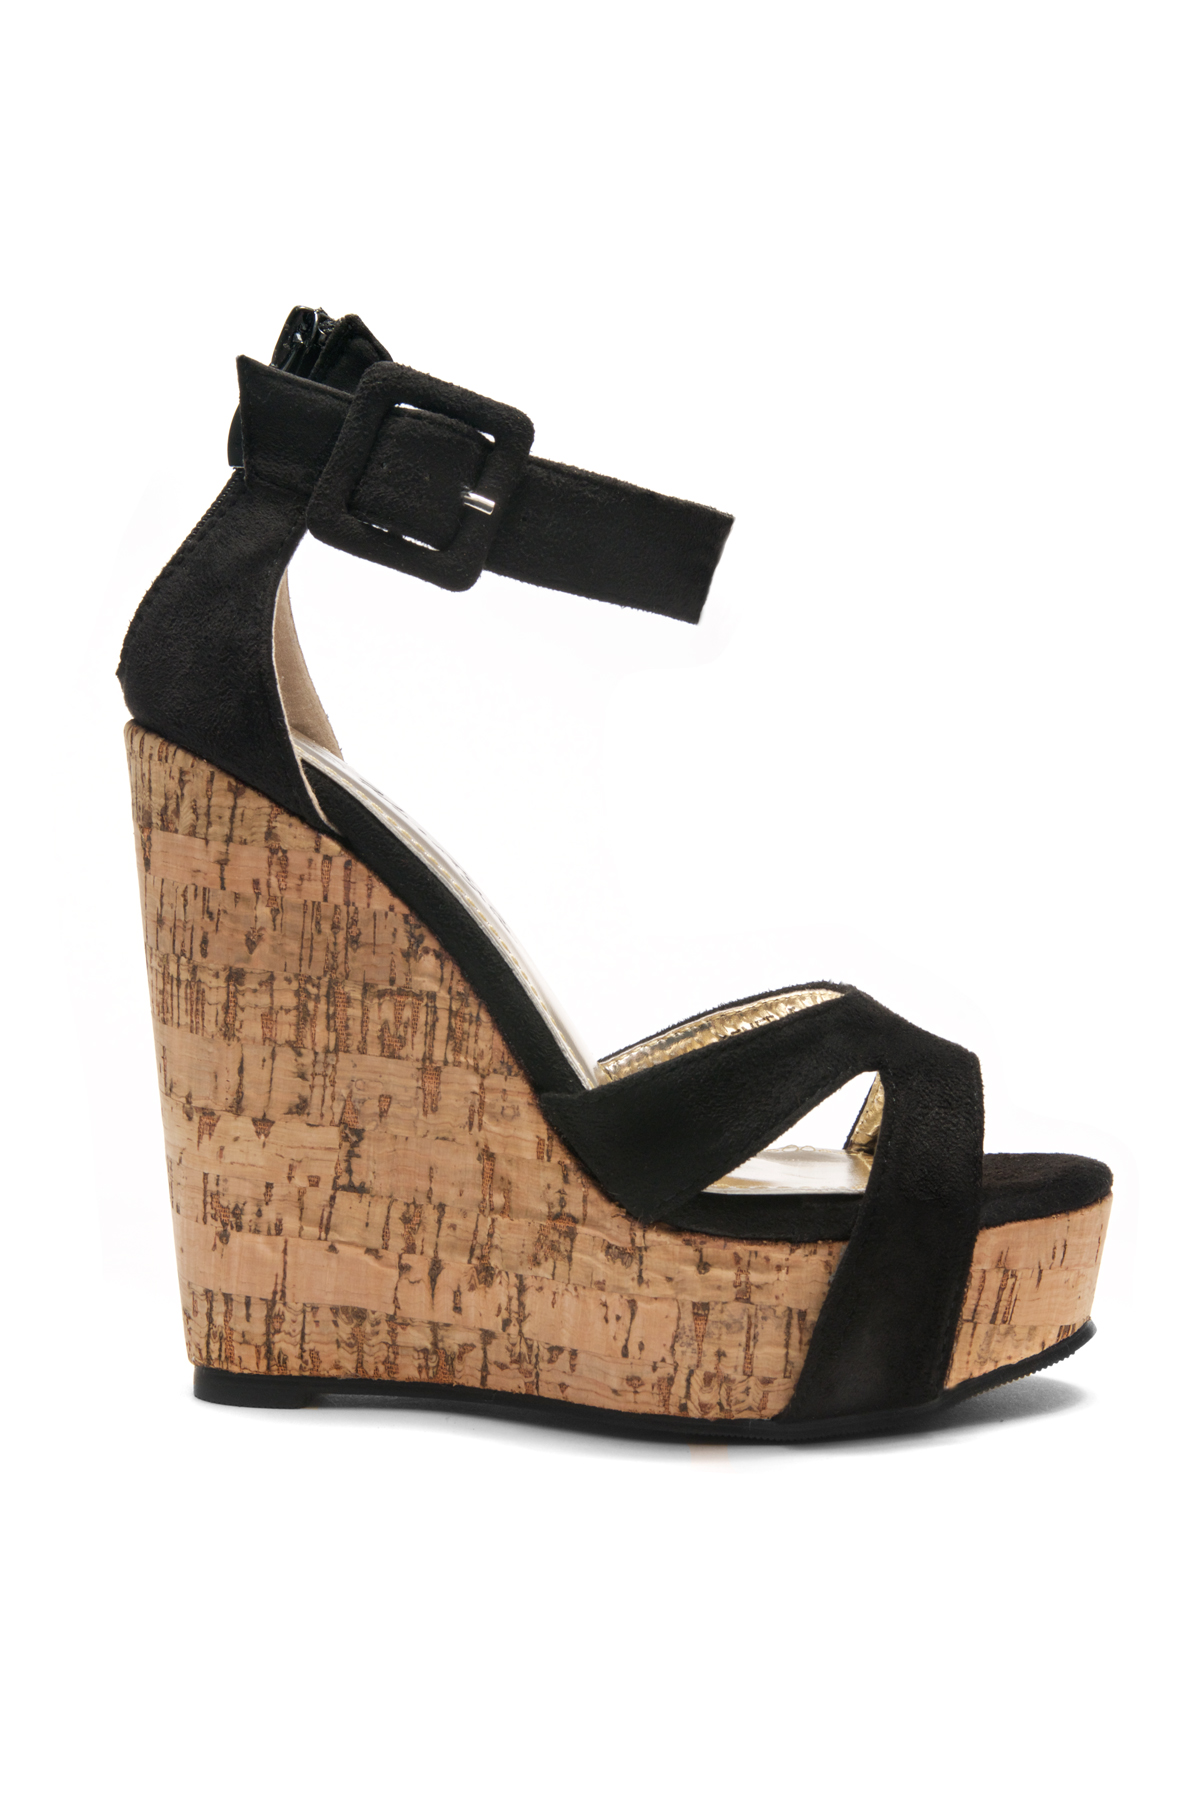 40056b8593a7 Women s Black Manmade Brenee 6-inch Cork Wedge Sandals with Bold Ankle  Buckle